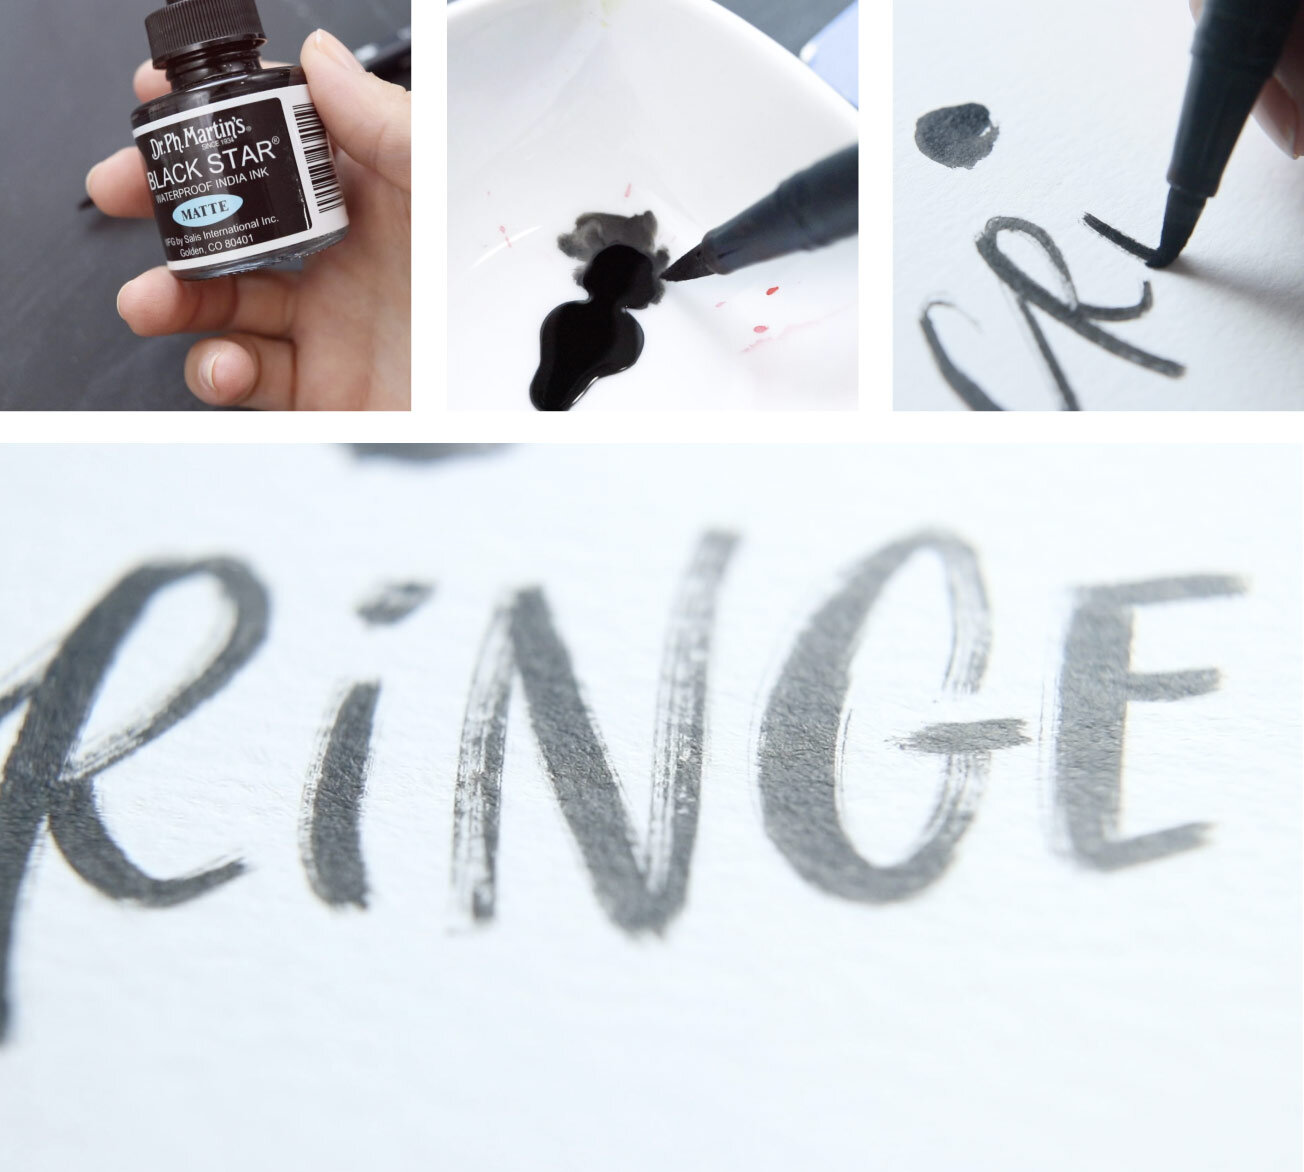 Grab ink and dip your ruined tip. Then letter with some awesome texture